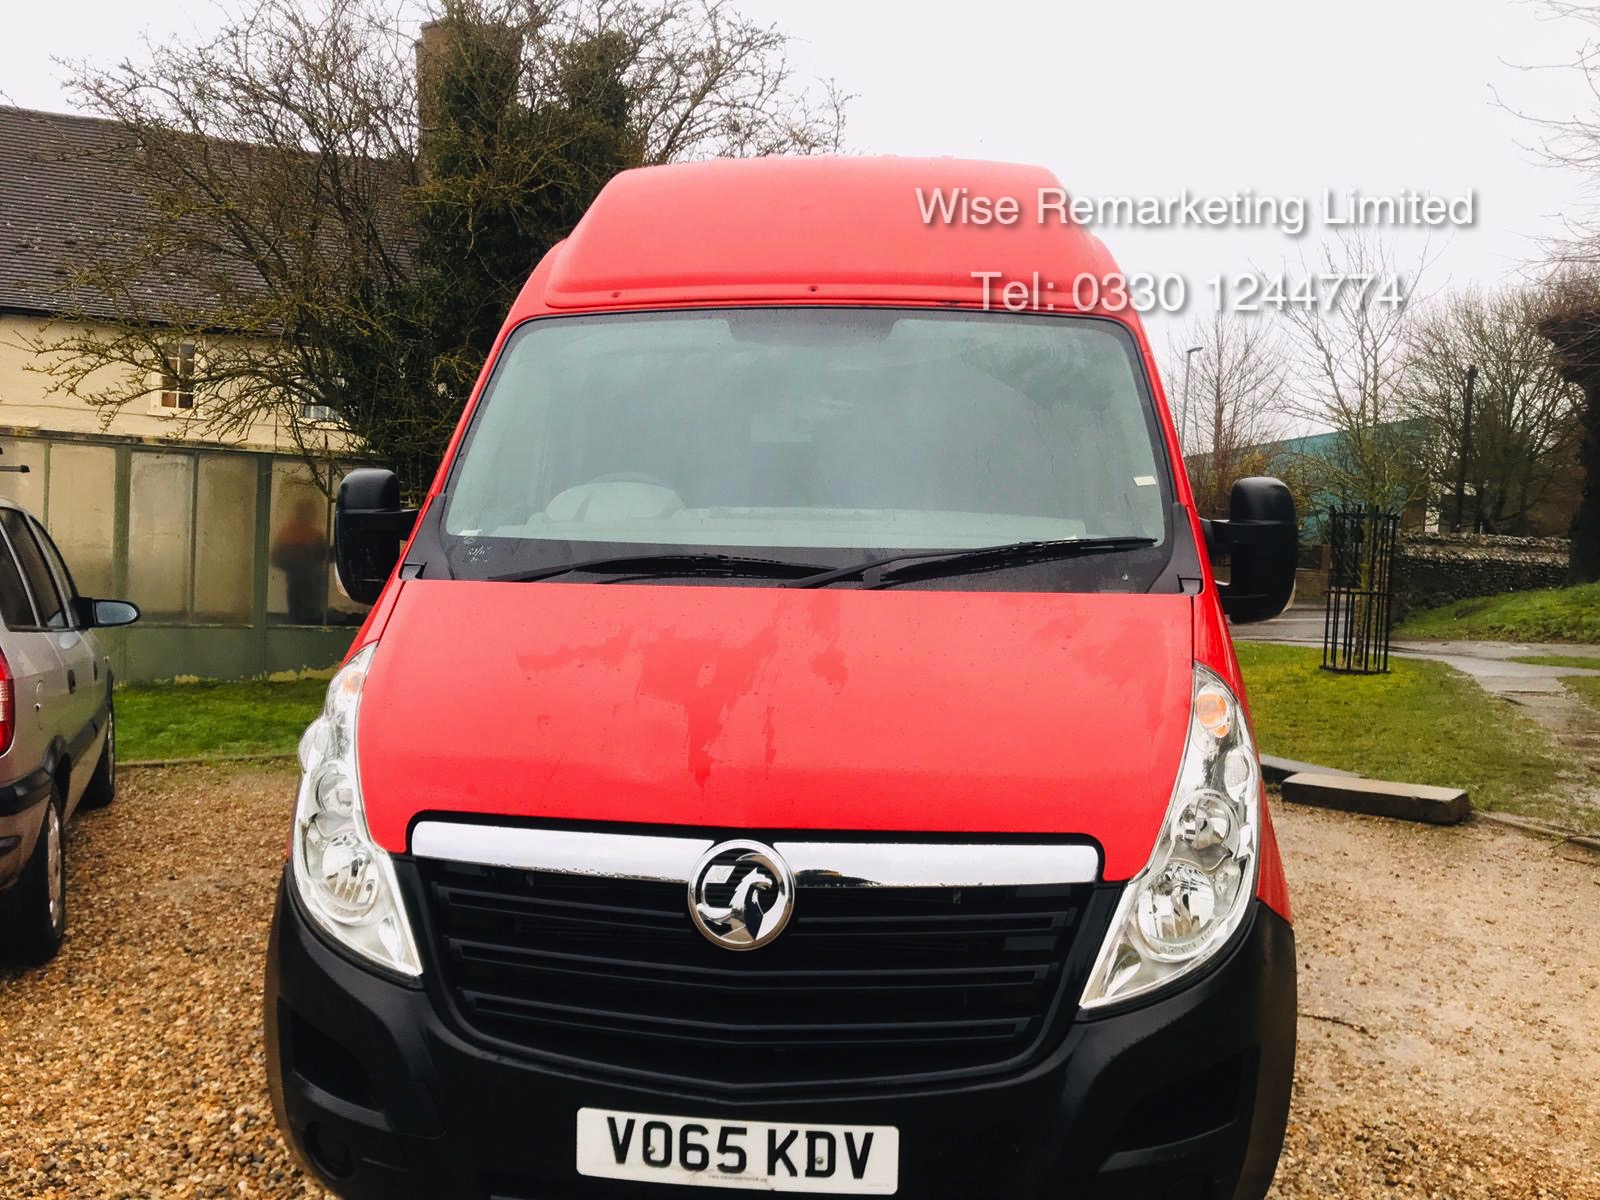 Vauxhall Movano 35 2.3 CDTi BiTurbo EcoFlex **HIGH ROOF** 2016 Model - AIr con - 1 Owner - RARE - Image 5 of 21